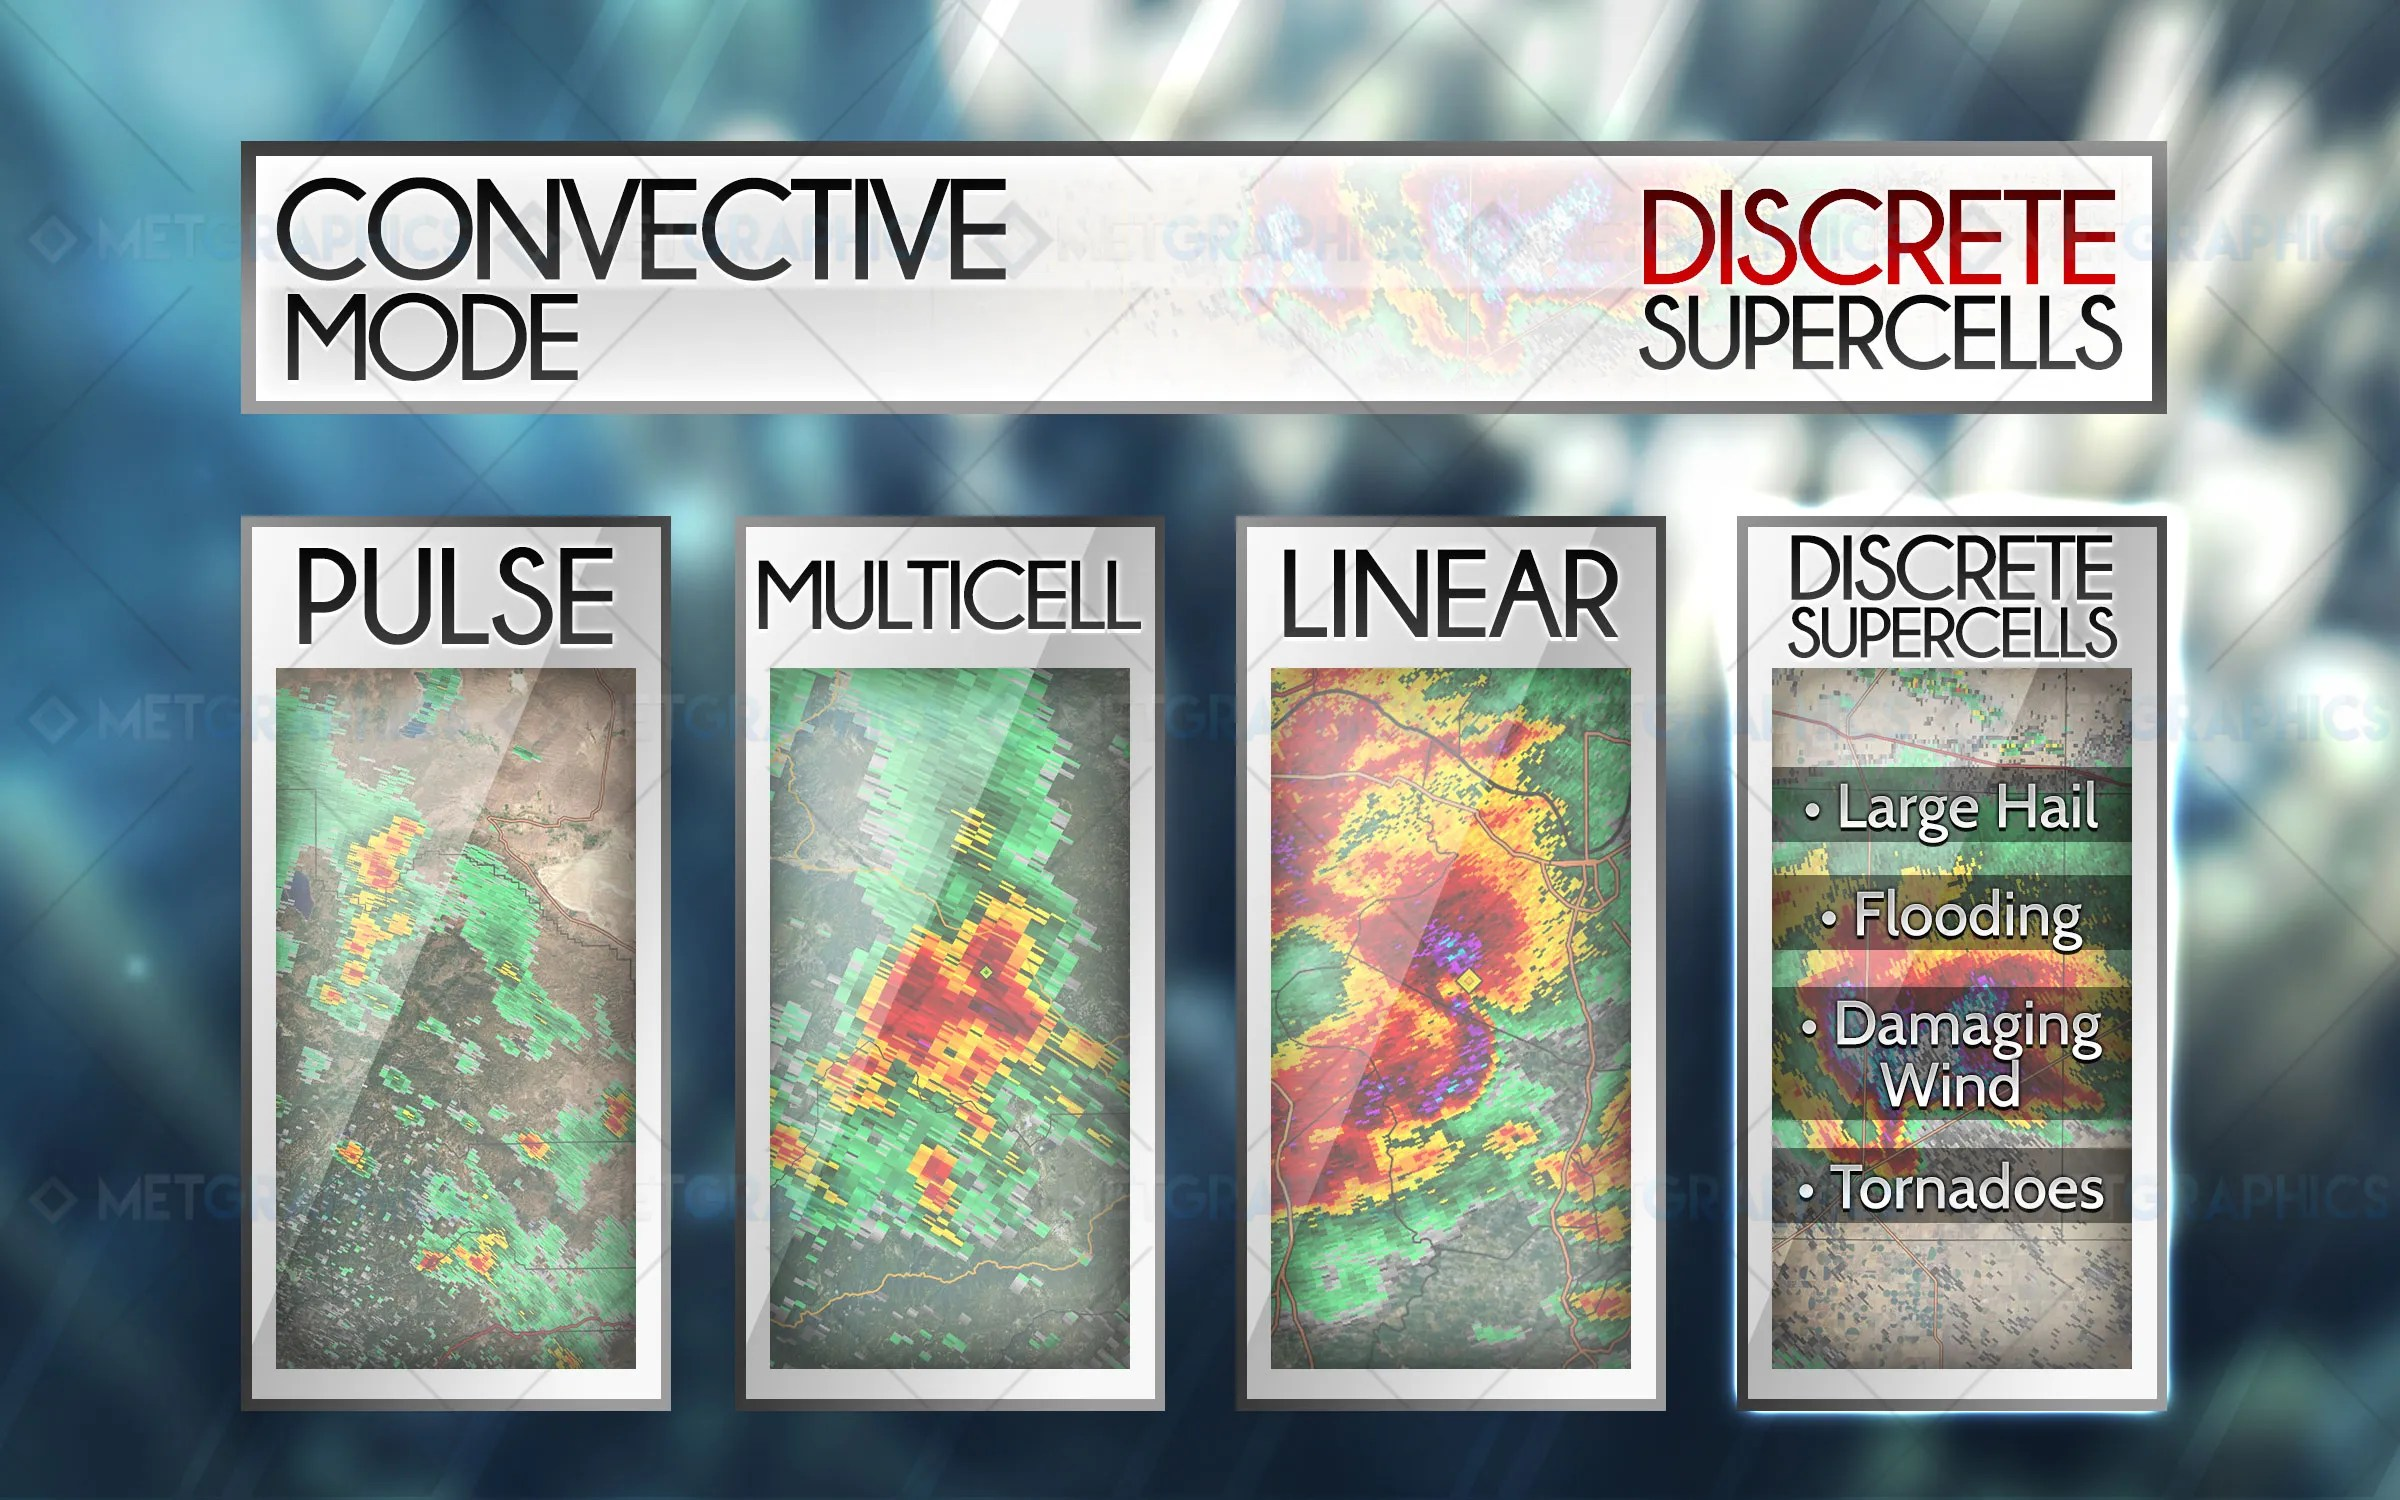 Discrete Supercells [Convective Mode]